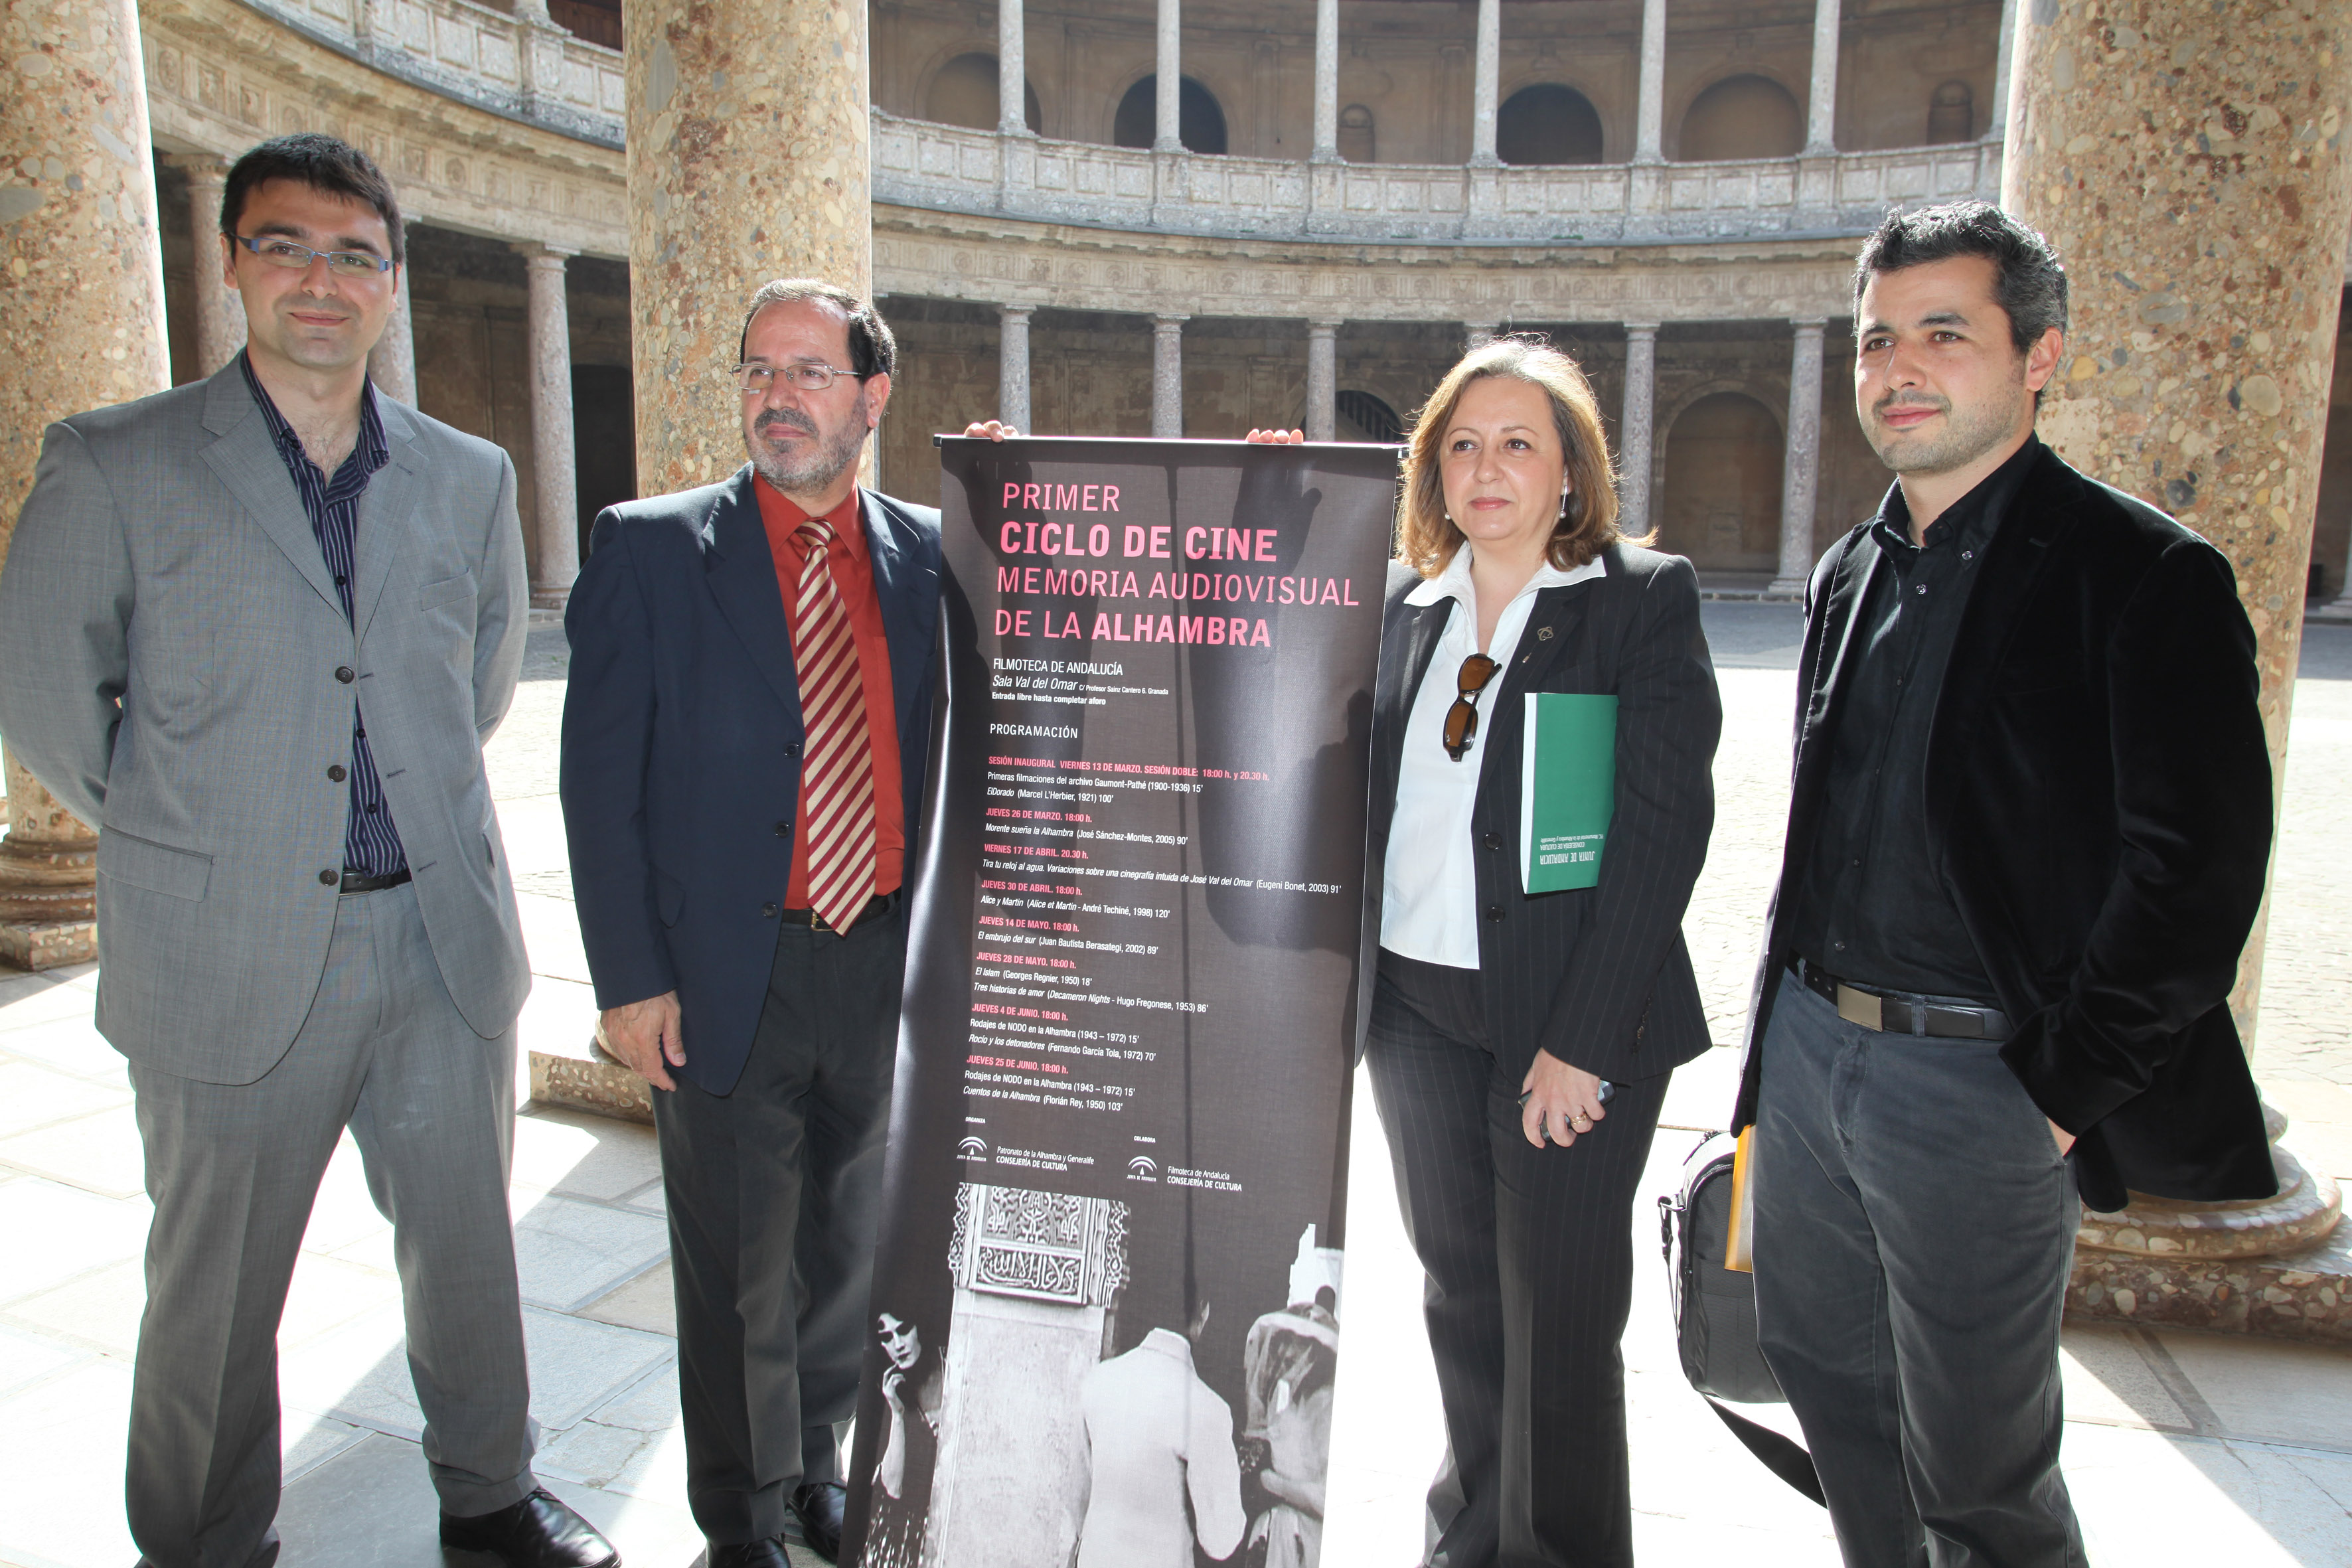 The Alhambra recovers its audio-visual memory